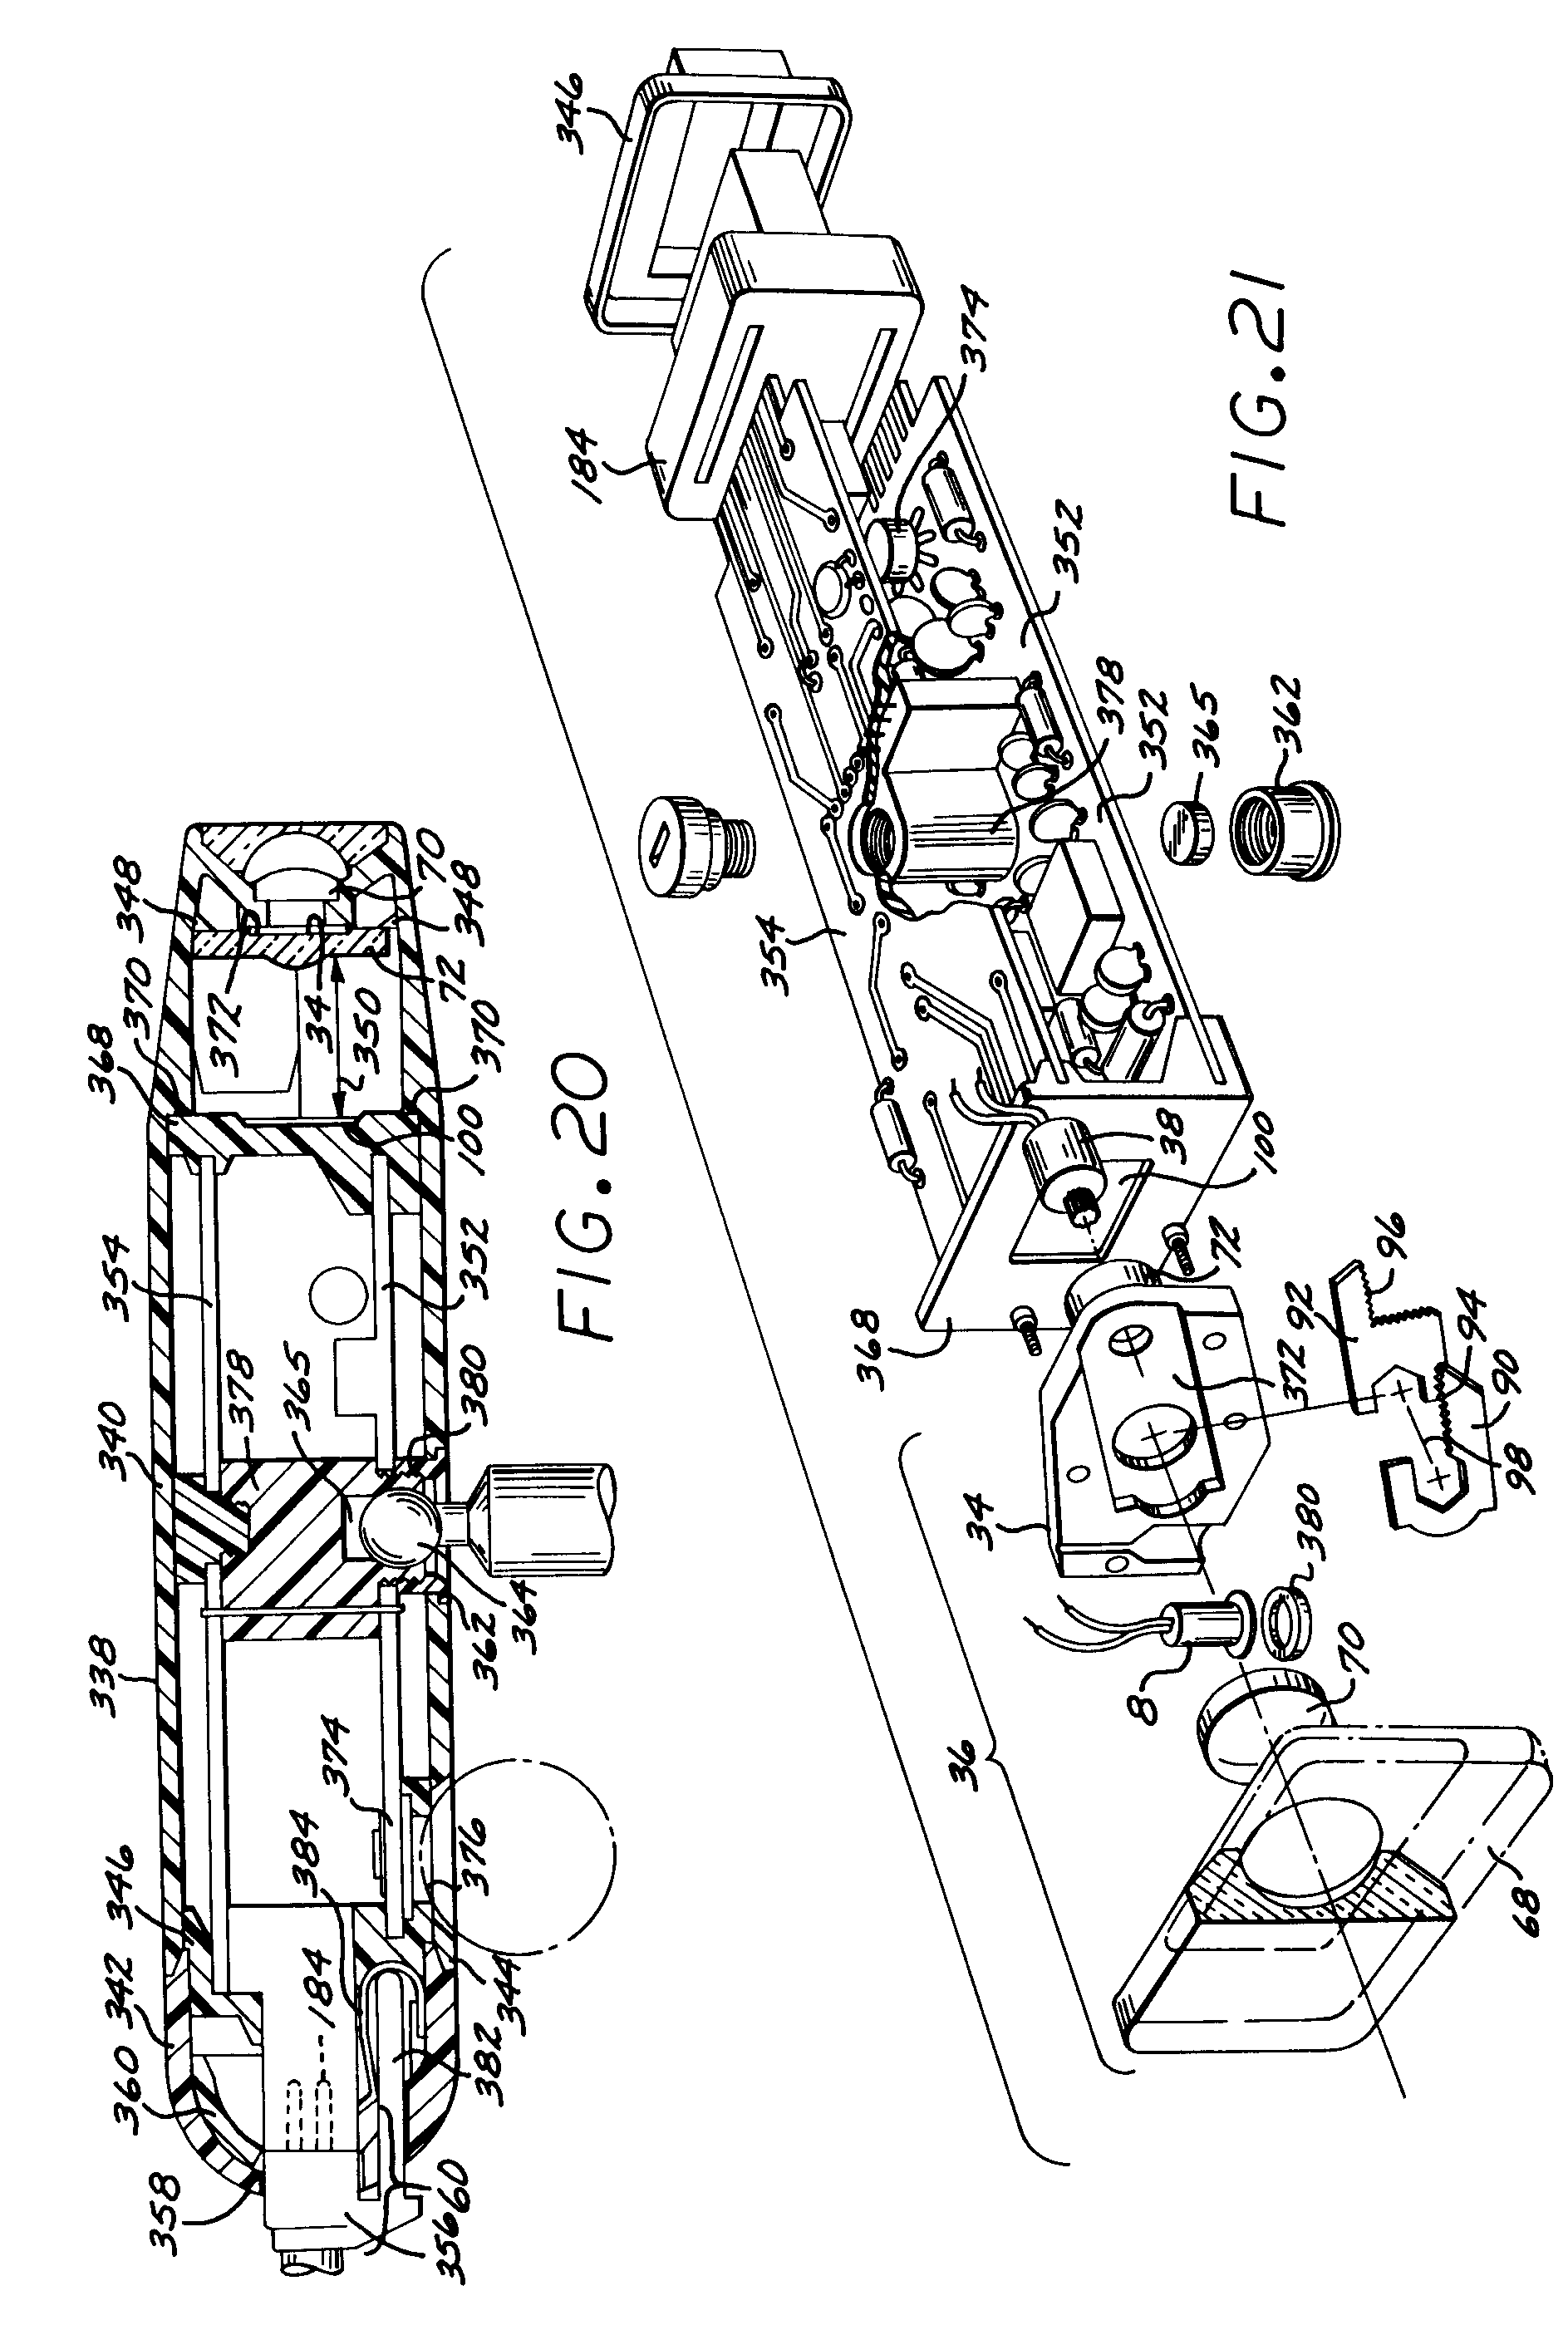 patent ep0281427b1 - radio controlled toy